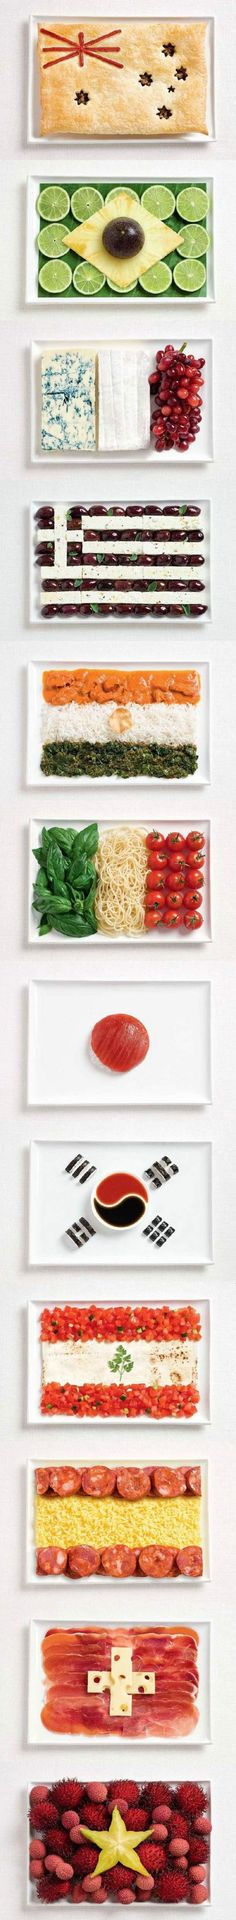 Flags from food. Amazing!